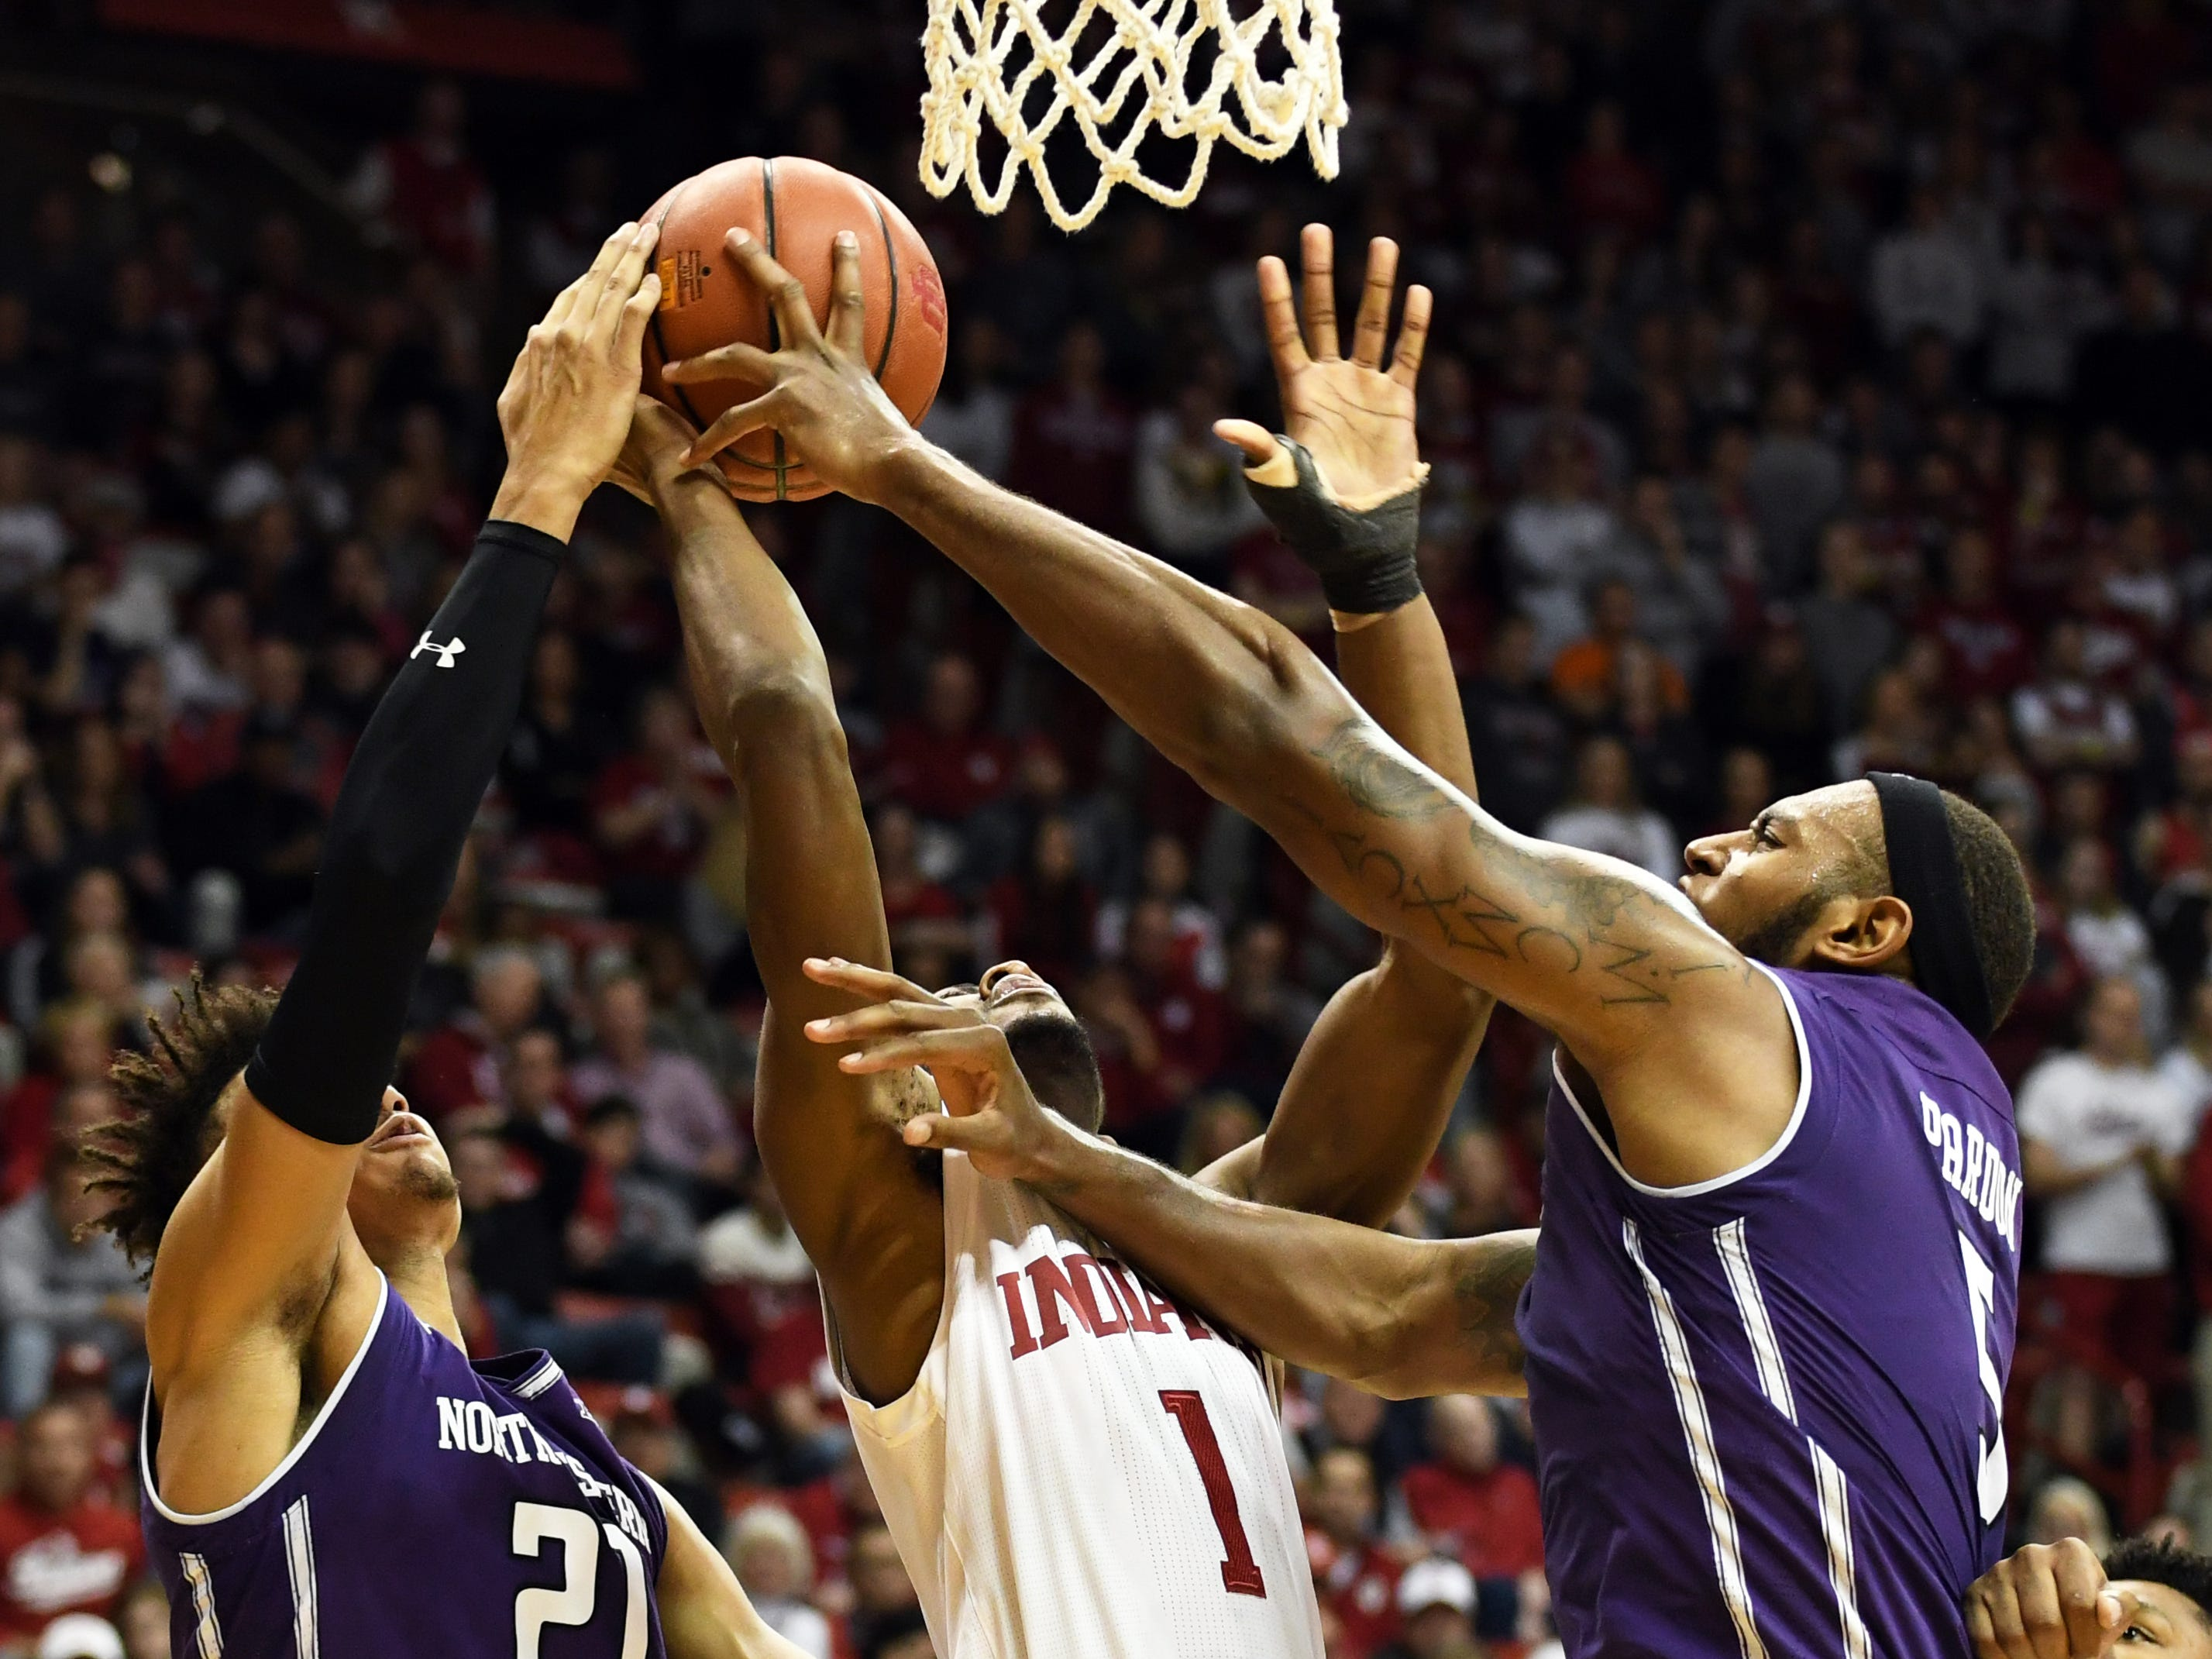 Indiana Hoosiers guard Al Durham (1) is fouled as he goes to the basket during the game against Northwestern at Simon Skjodt Assembly Hall in Bloomington, Ind., on Saturday, Dec. 1, 2018.